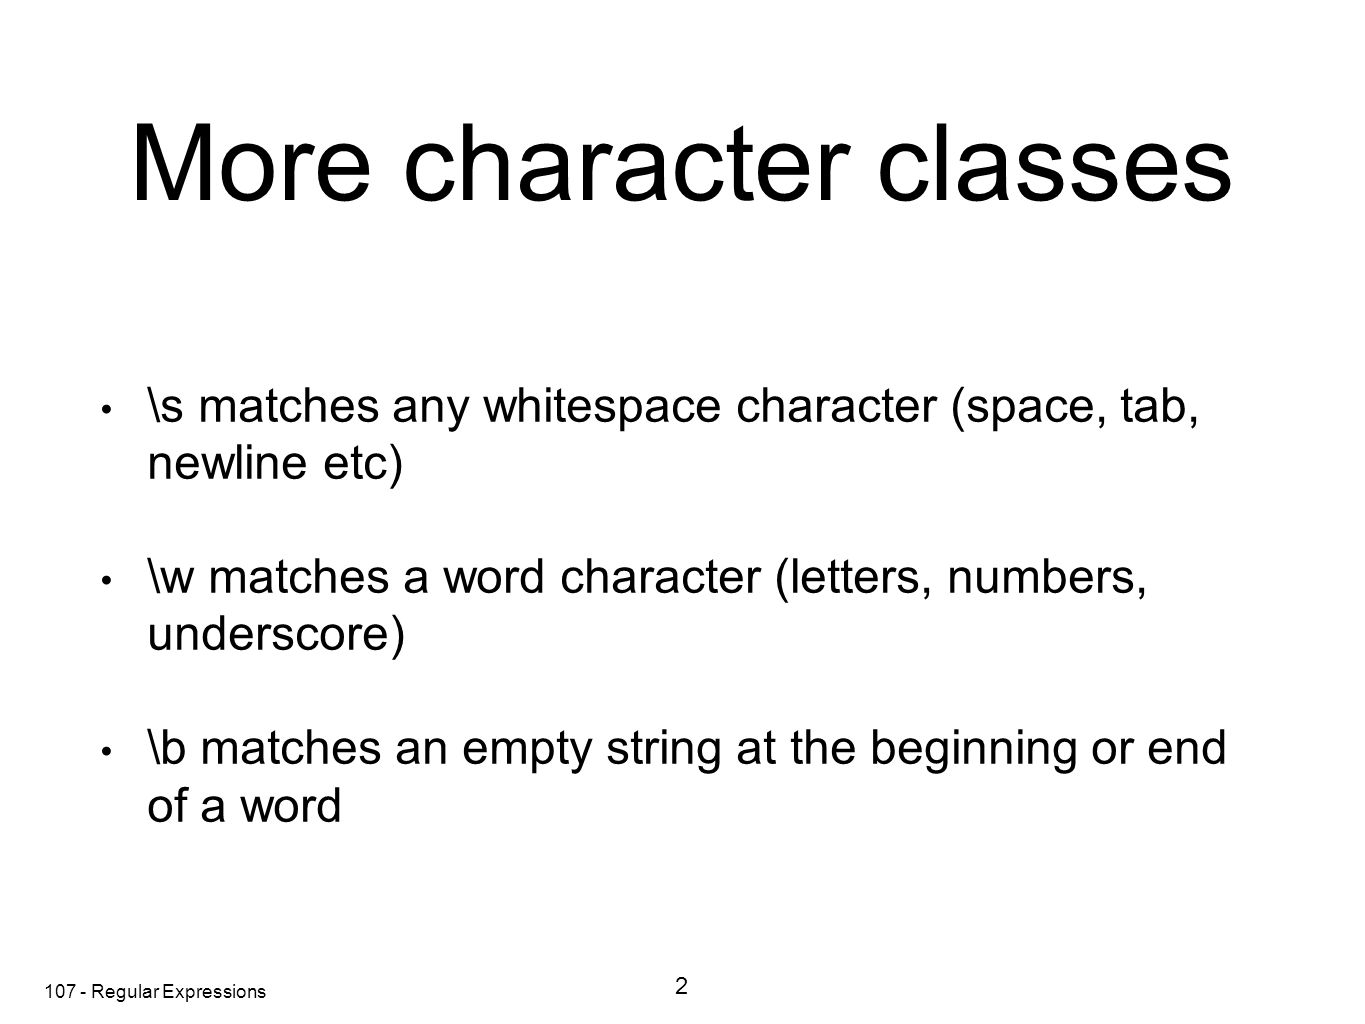 107 - Regular Expressions More character classes \s matches any whitespace character (space, tab, newline etc) \w matches a word character (letters, numbers, underscore) \b matches an empty string at the beginning or end of a word 2